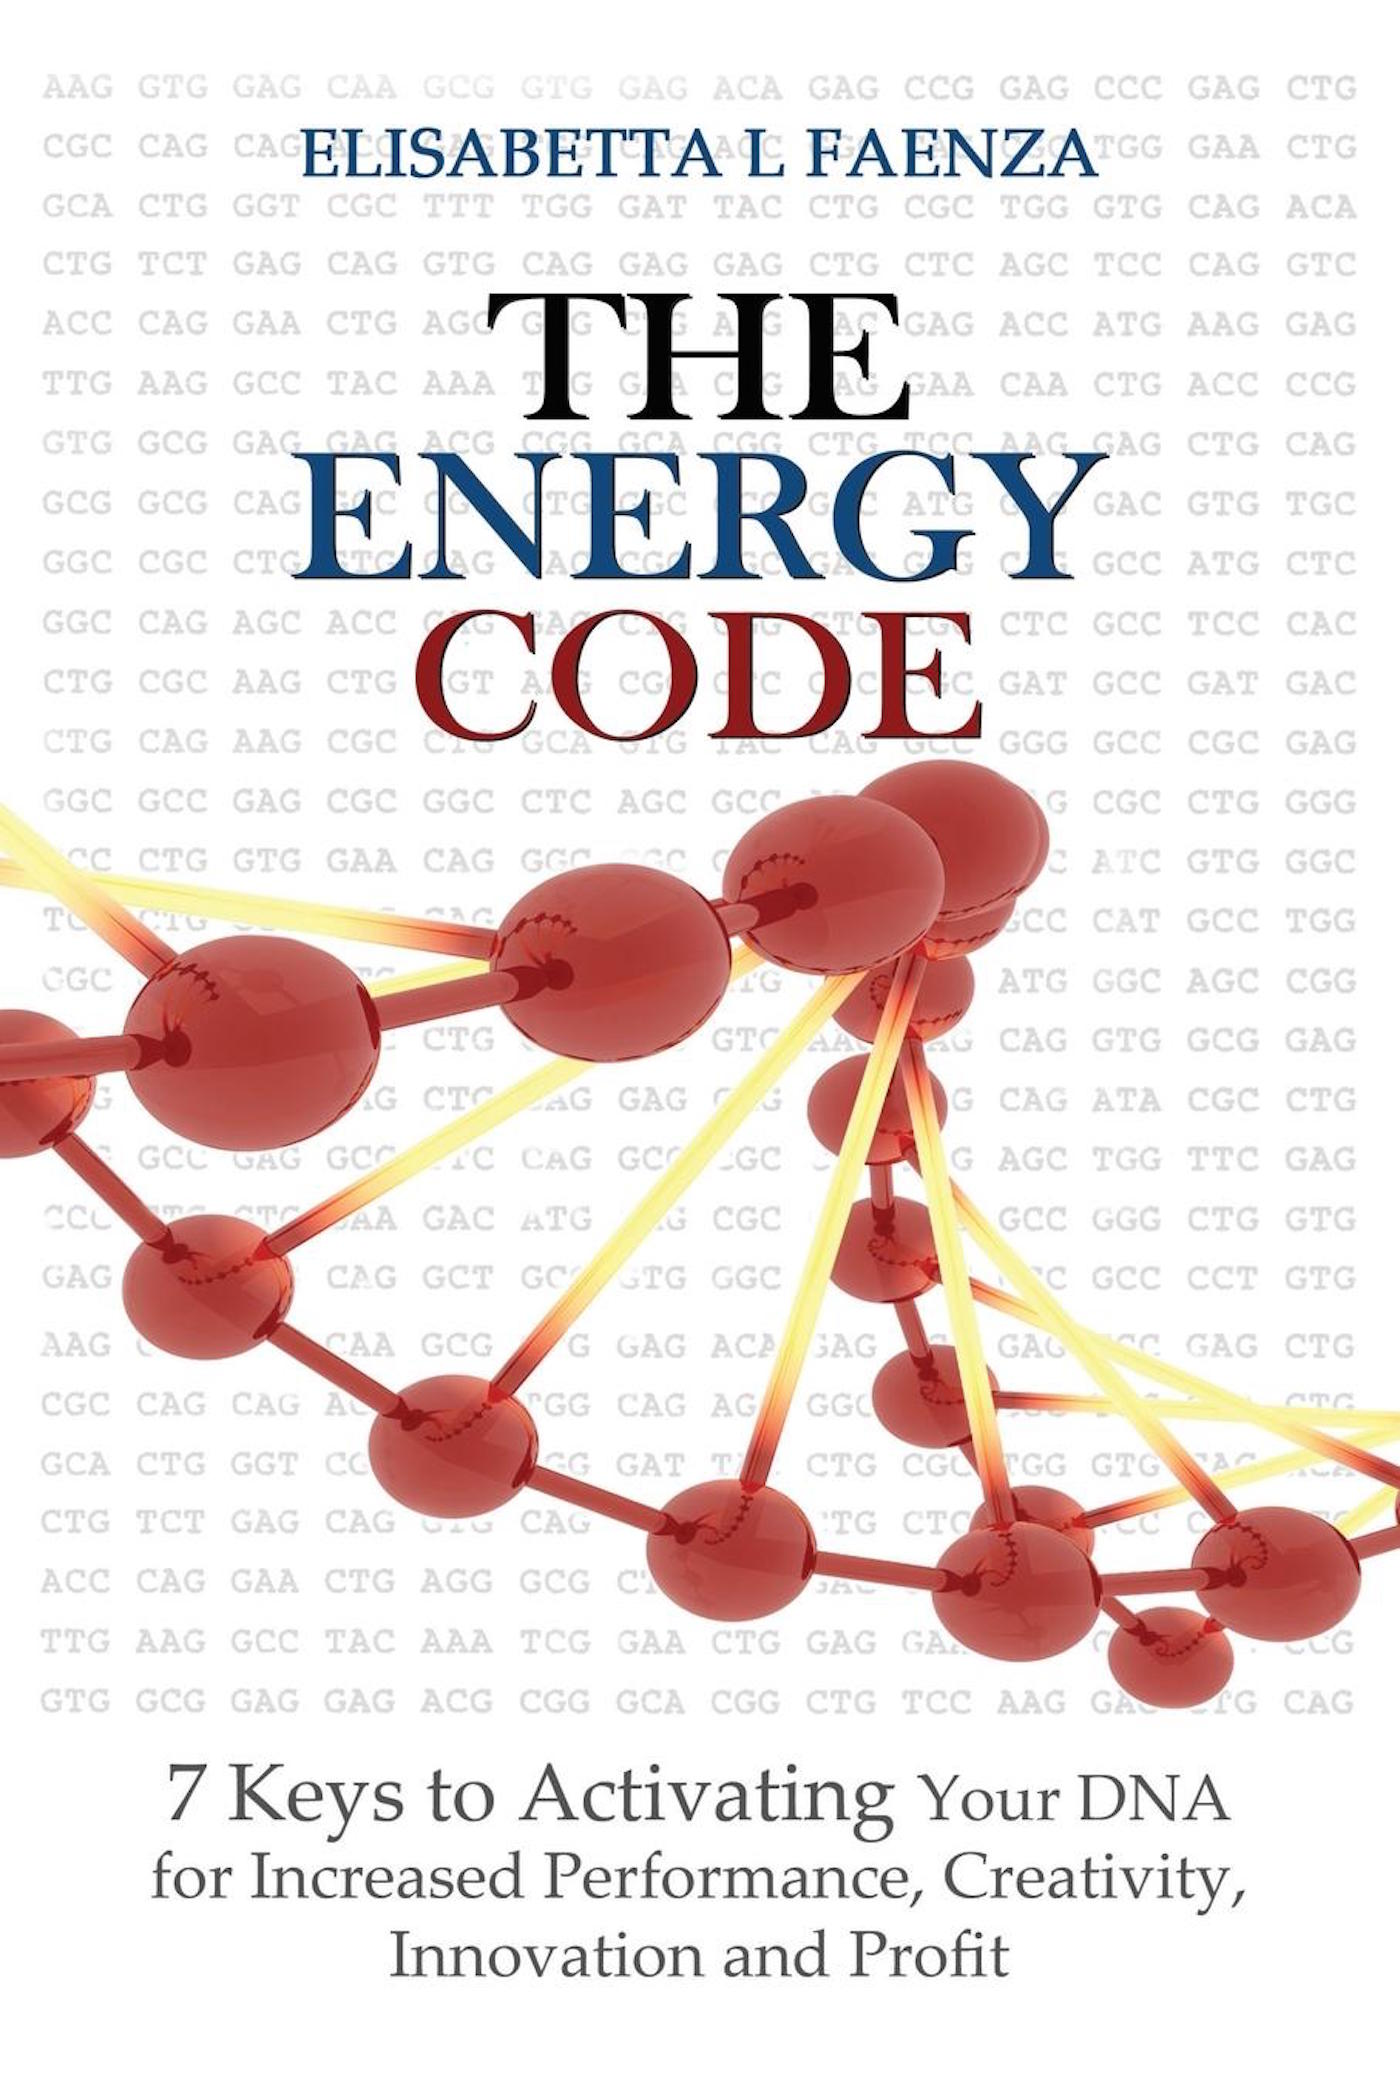 The Energy Code: 7 Keys to Activating Your DNA for Increased Productivity, Creativity, Innovation and Profit